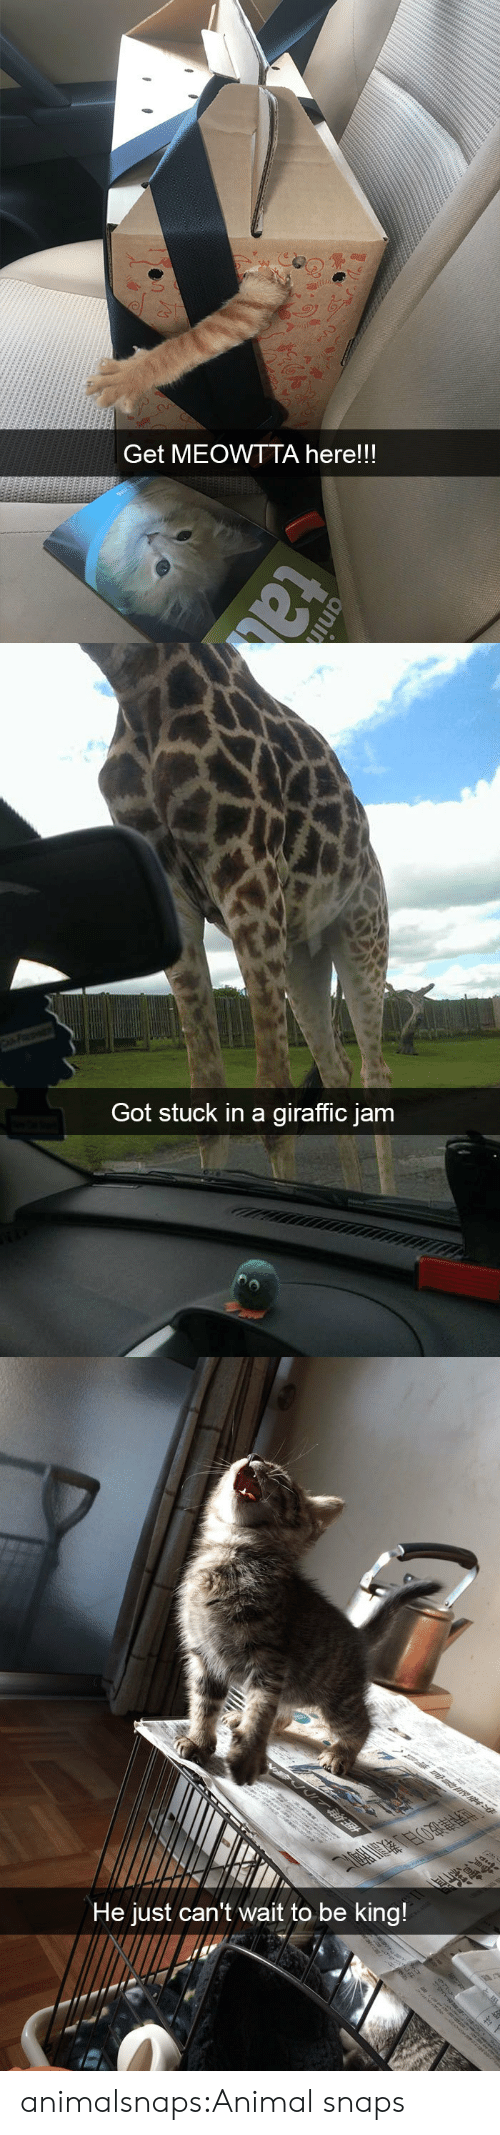 Target, Tumblr, and Animal: Get MEOWTTA here!!!   Got stuck in a giraffic jam   He just can't wait to be king! animalsnaps:Animal snaps